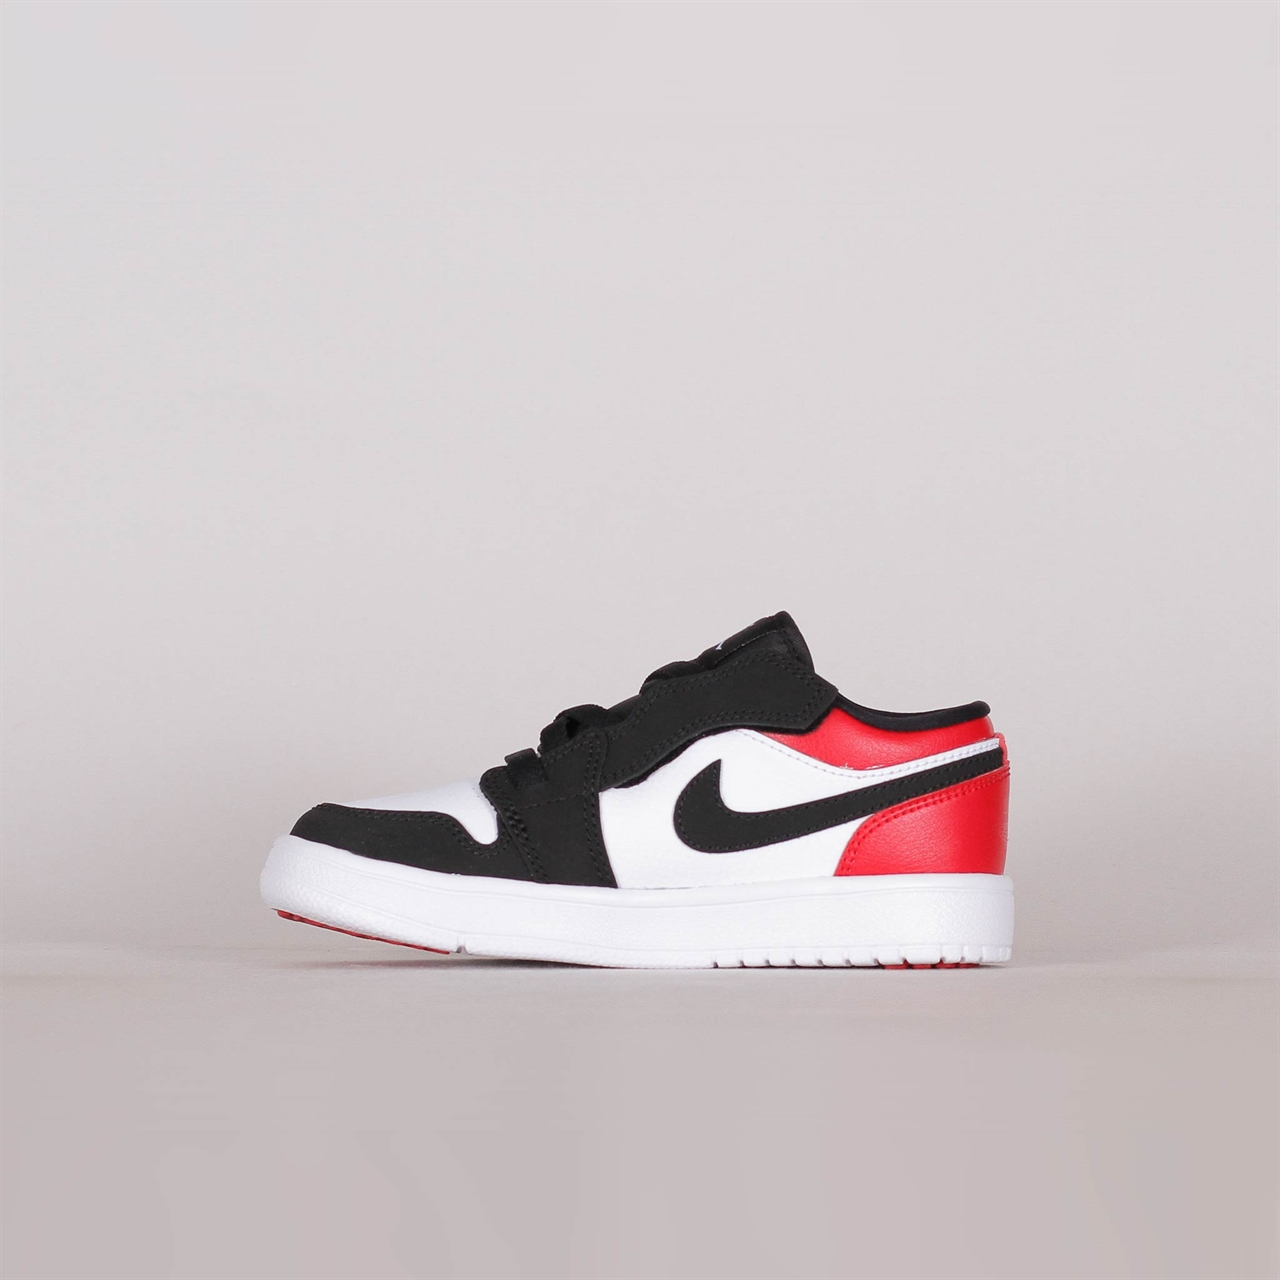 f2439912cb706 Shelta - Nike Air Jordan 1 Low Pre-School Black Toe (BQ6066-116)